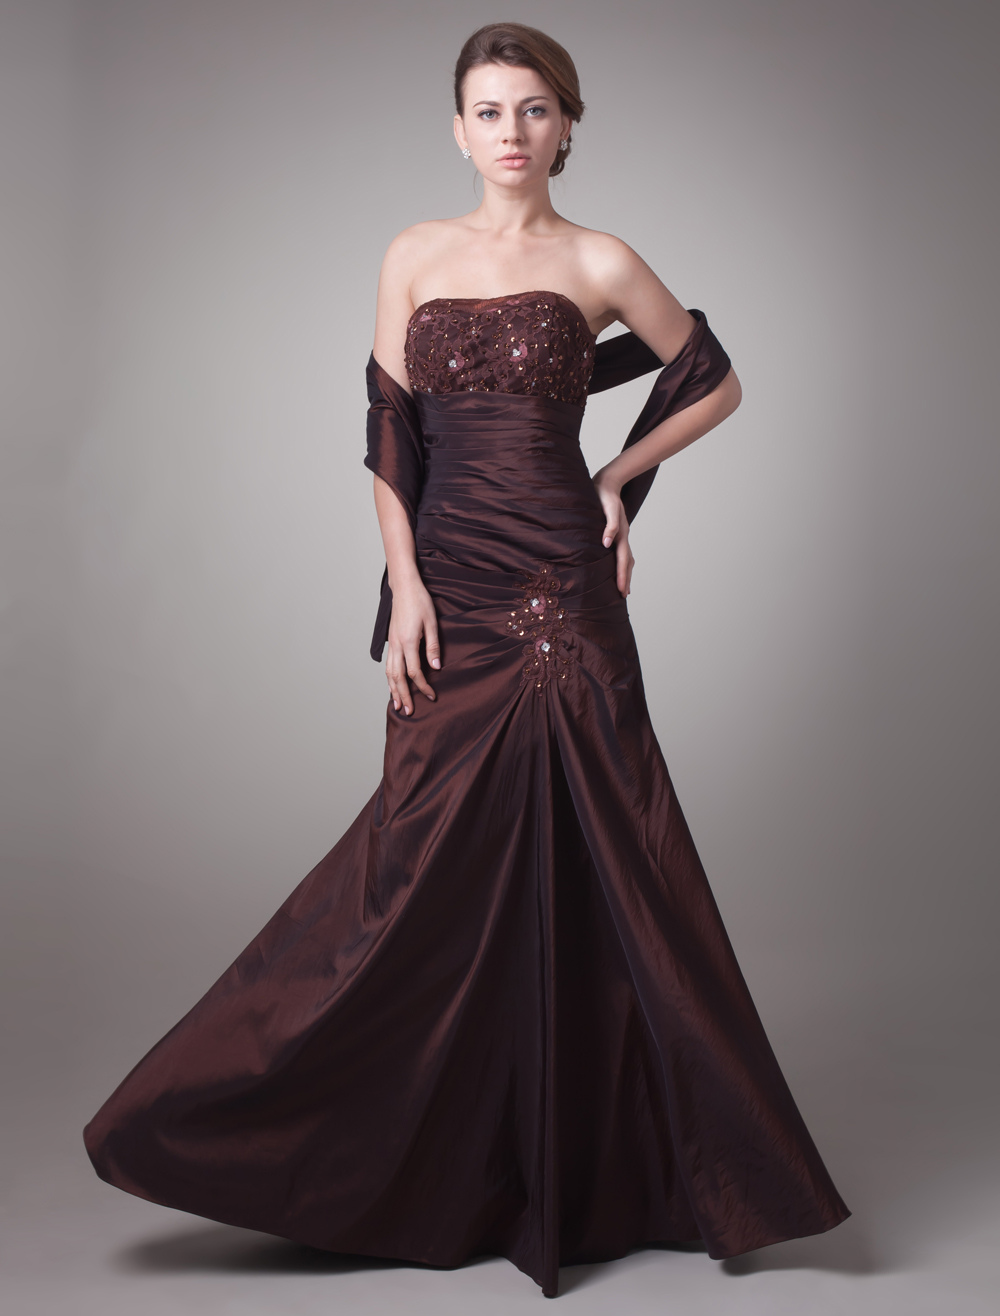 Chocolate Taffeta Sheath Sweetheart Neck Pleated Backless Mother of the Bride Dress